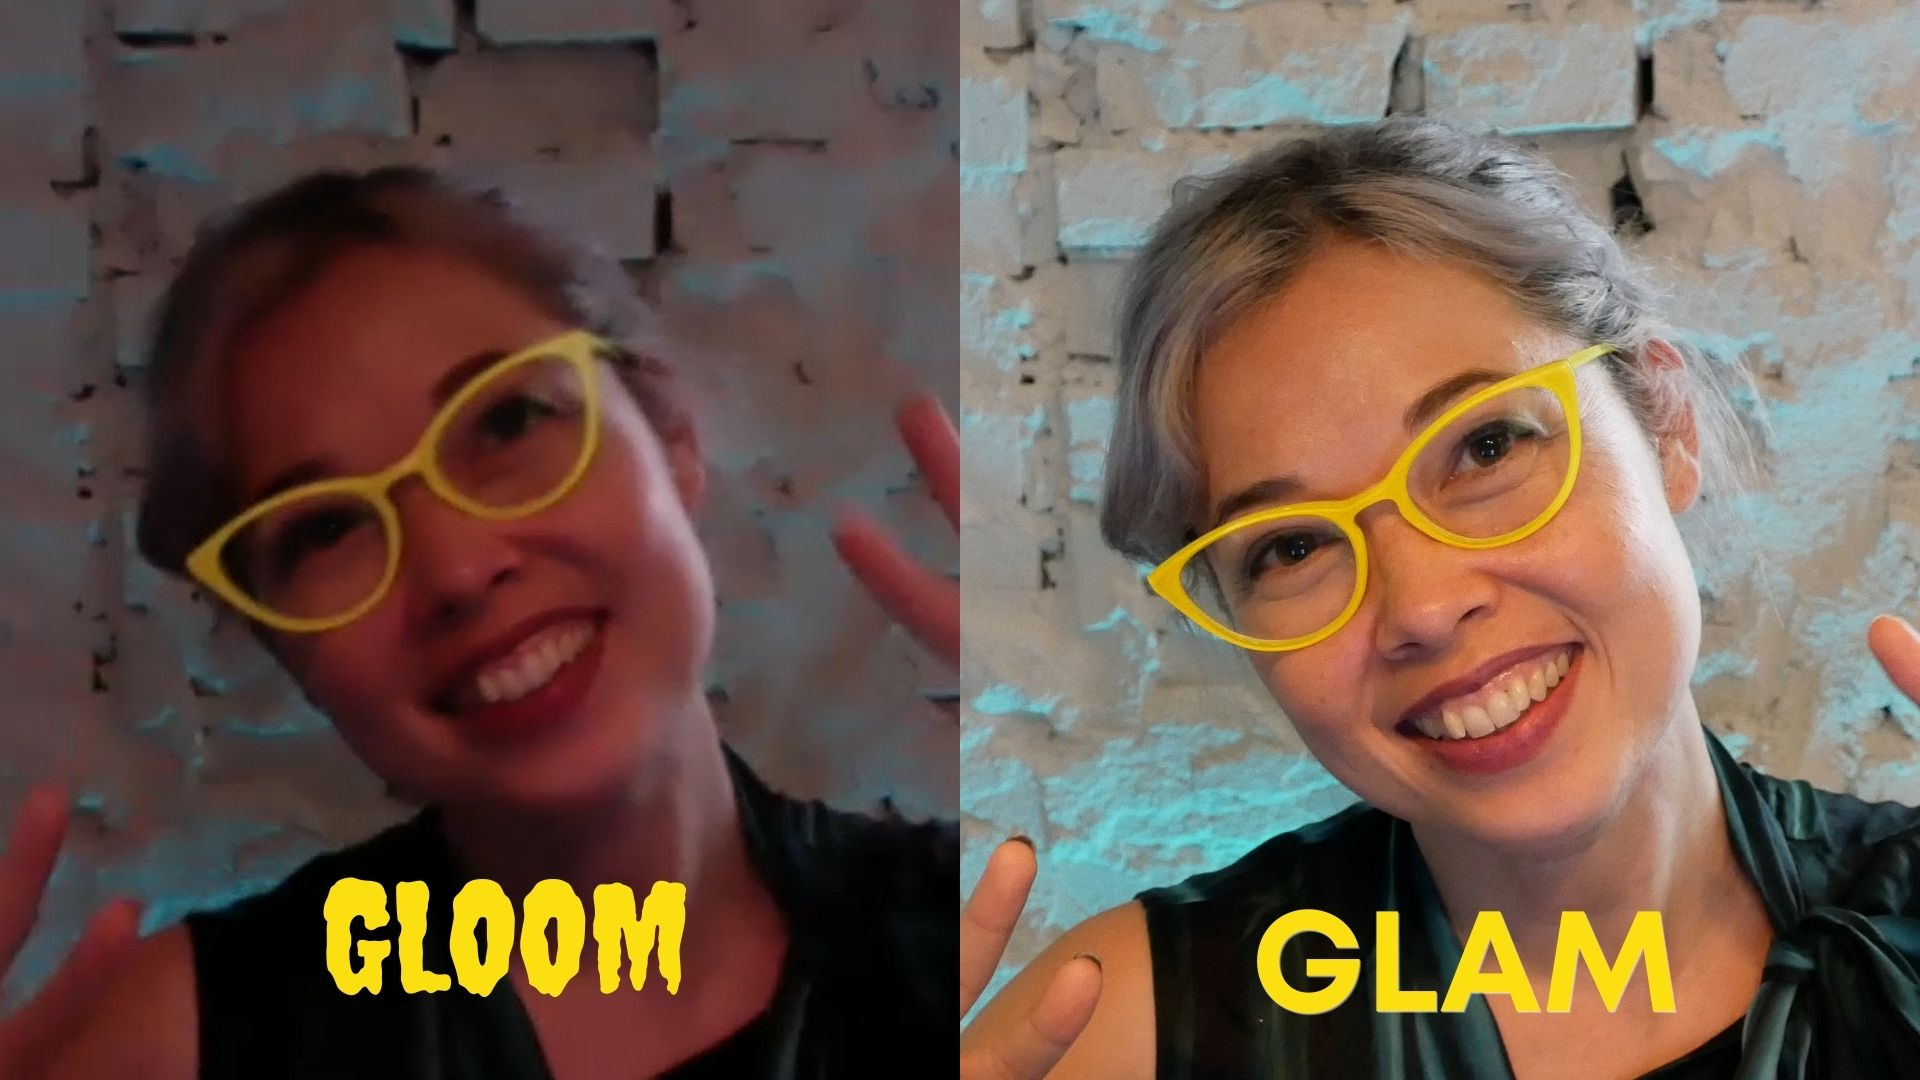 HAPPILY FROM GLOOM TO ZOOM